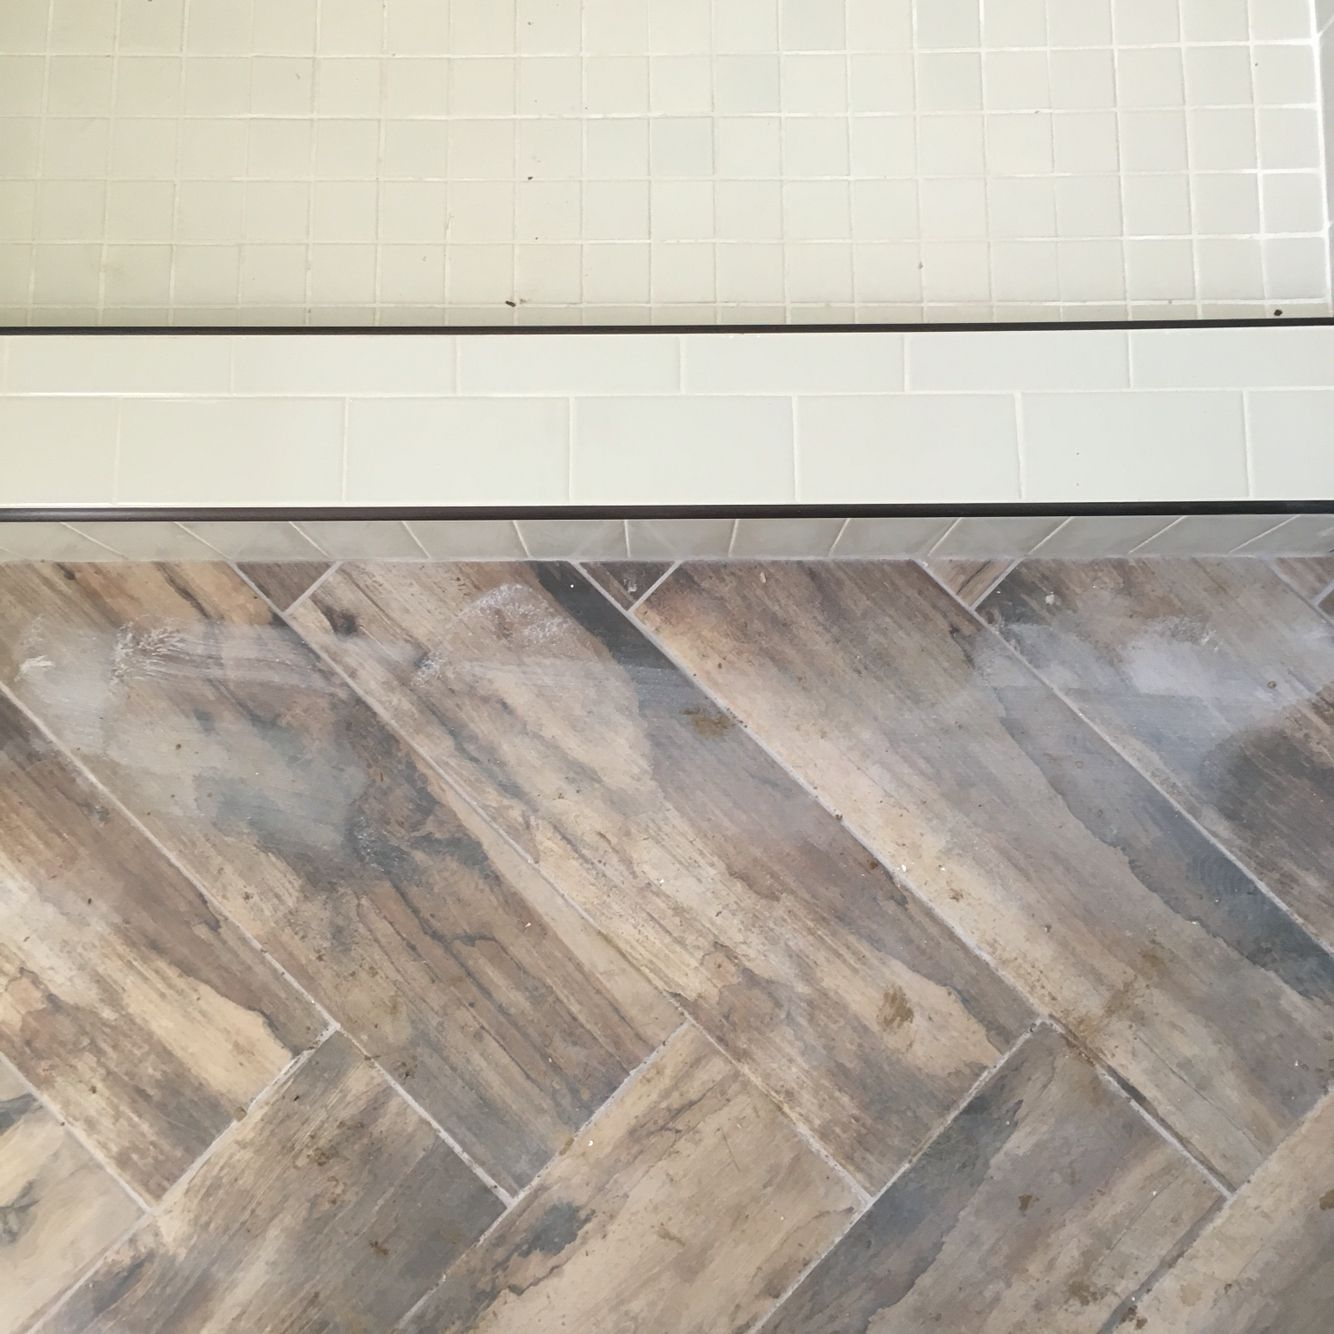 Wood Shower Floor Subway Tile Shower With Herringbone Wood Look Tile